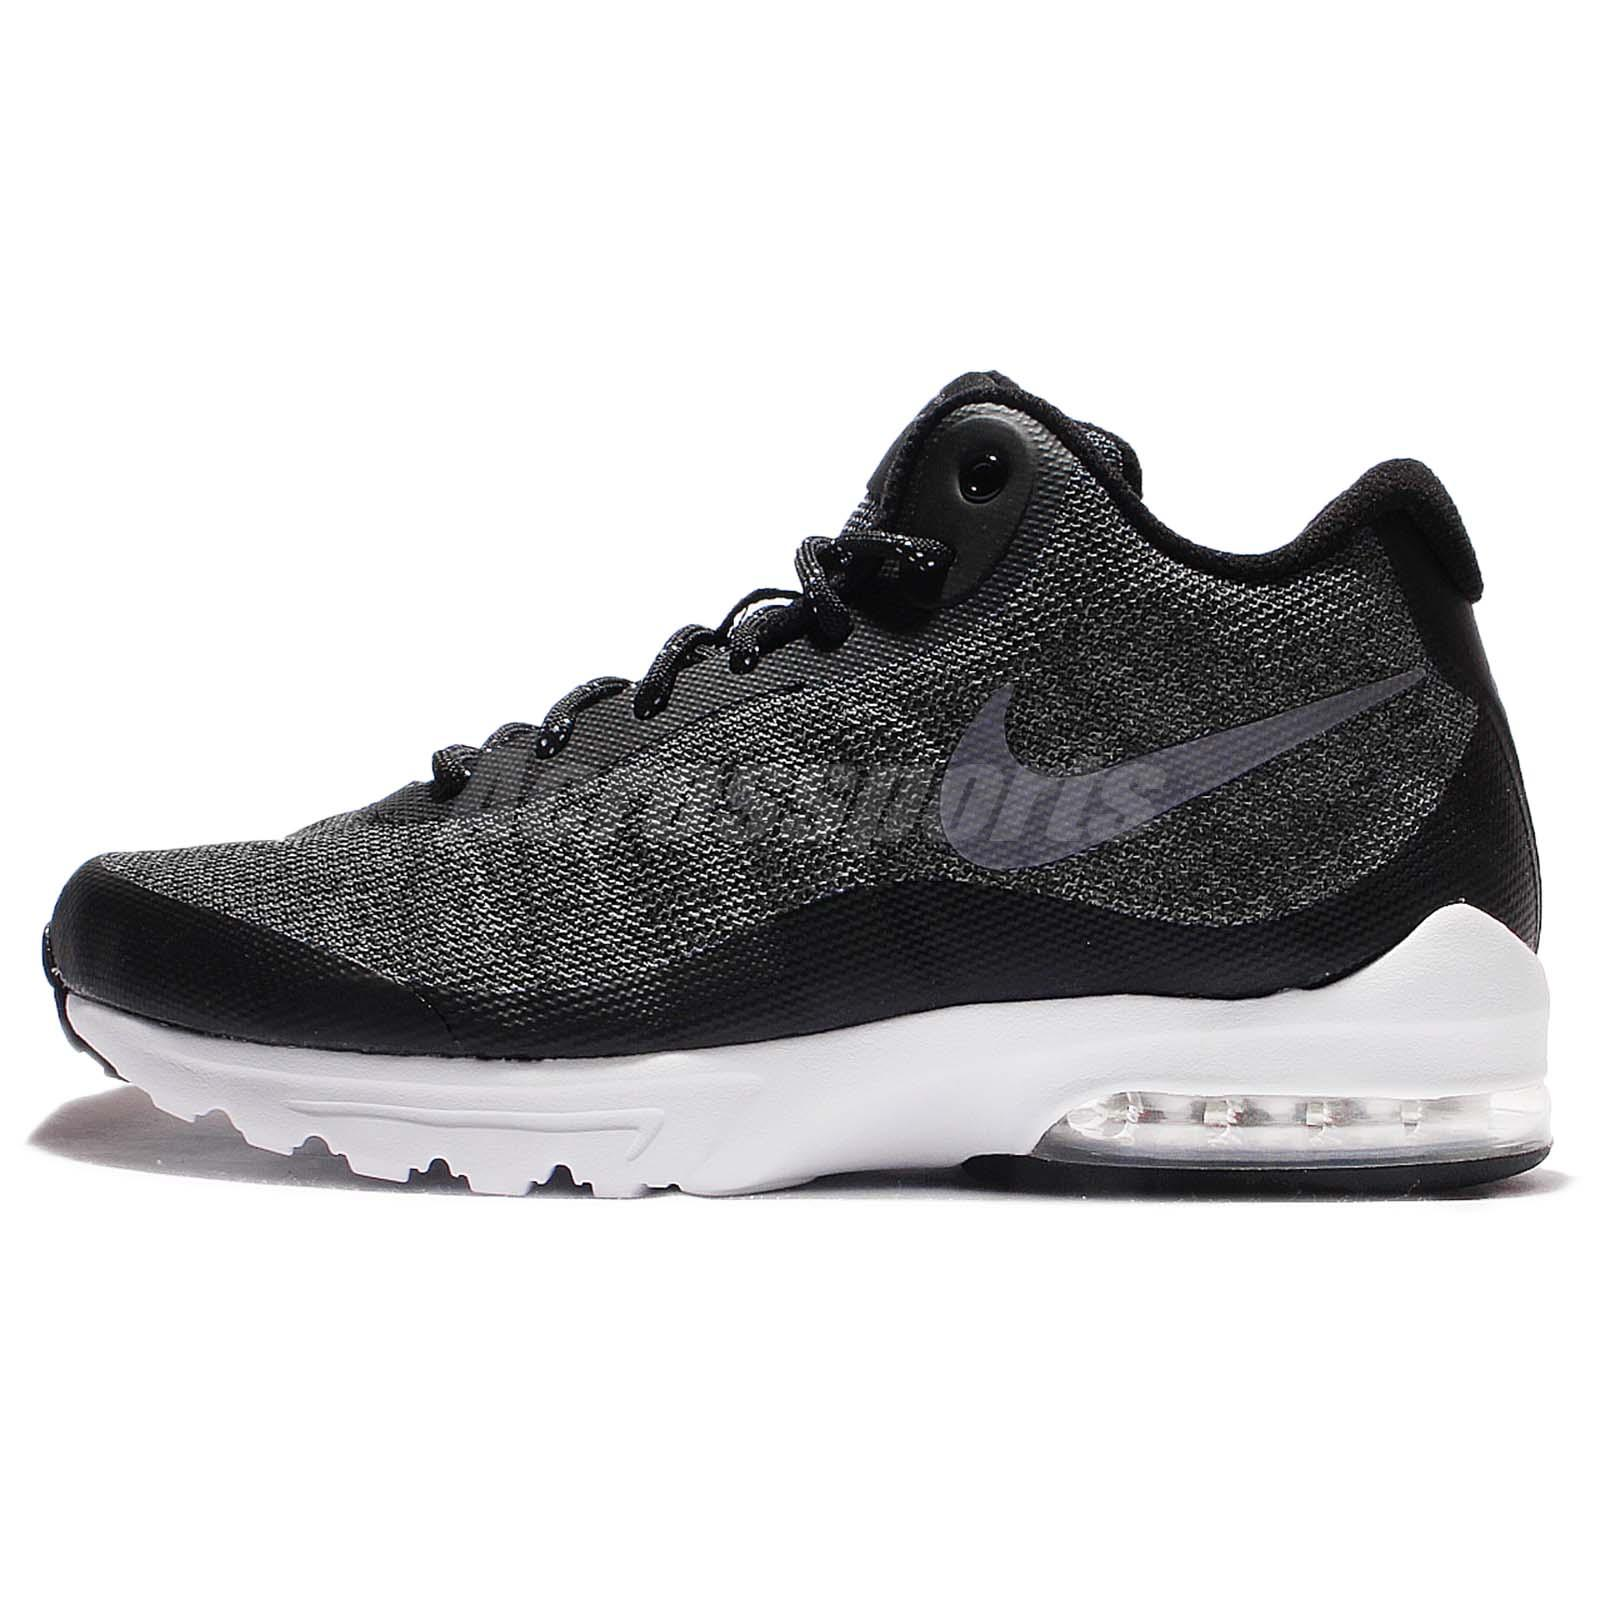 nike air max invigor mid black grey men running shoe. Black Bedroom Furniture Sets. Home Design Ideas